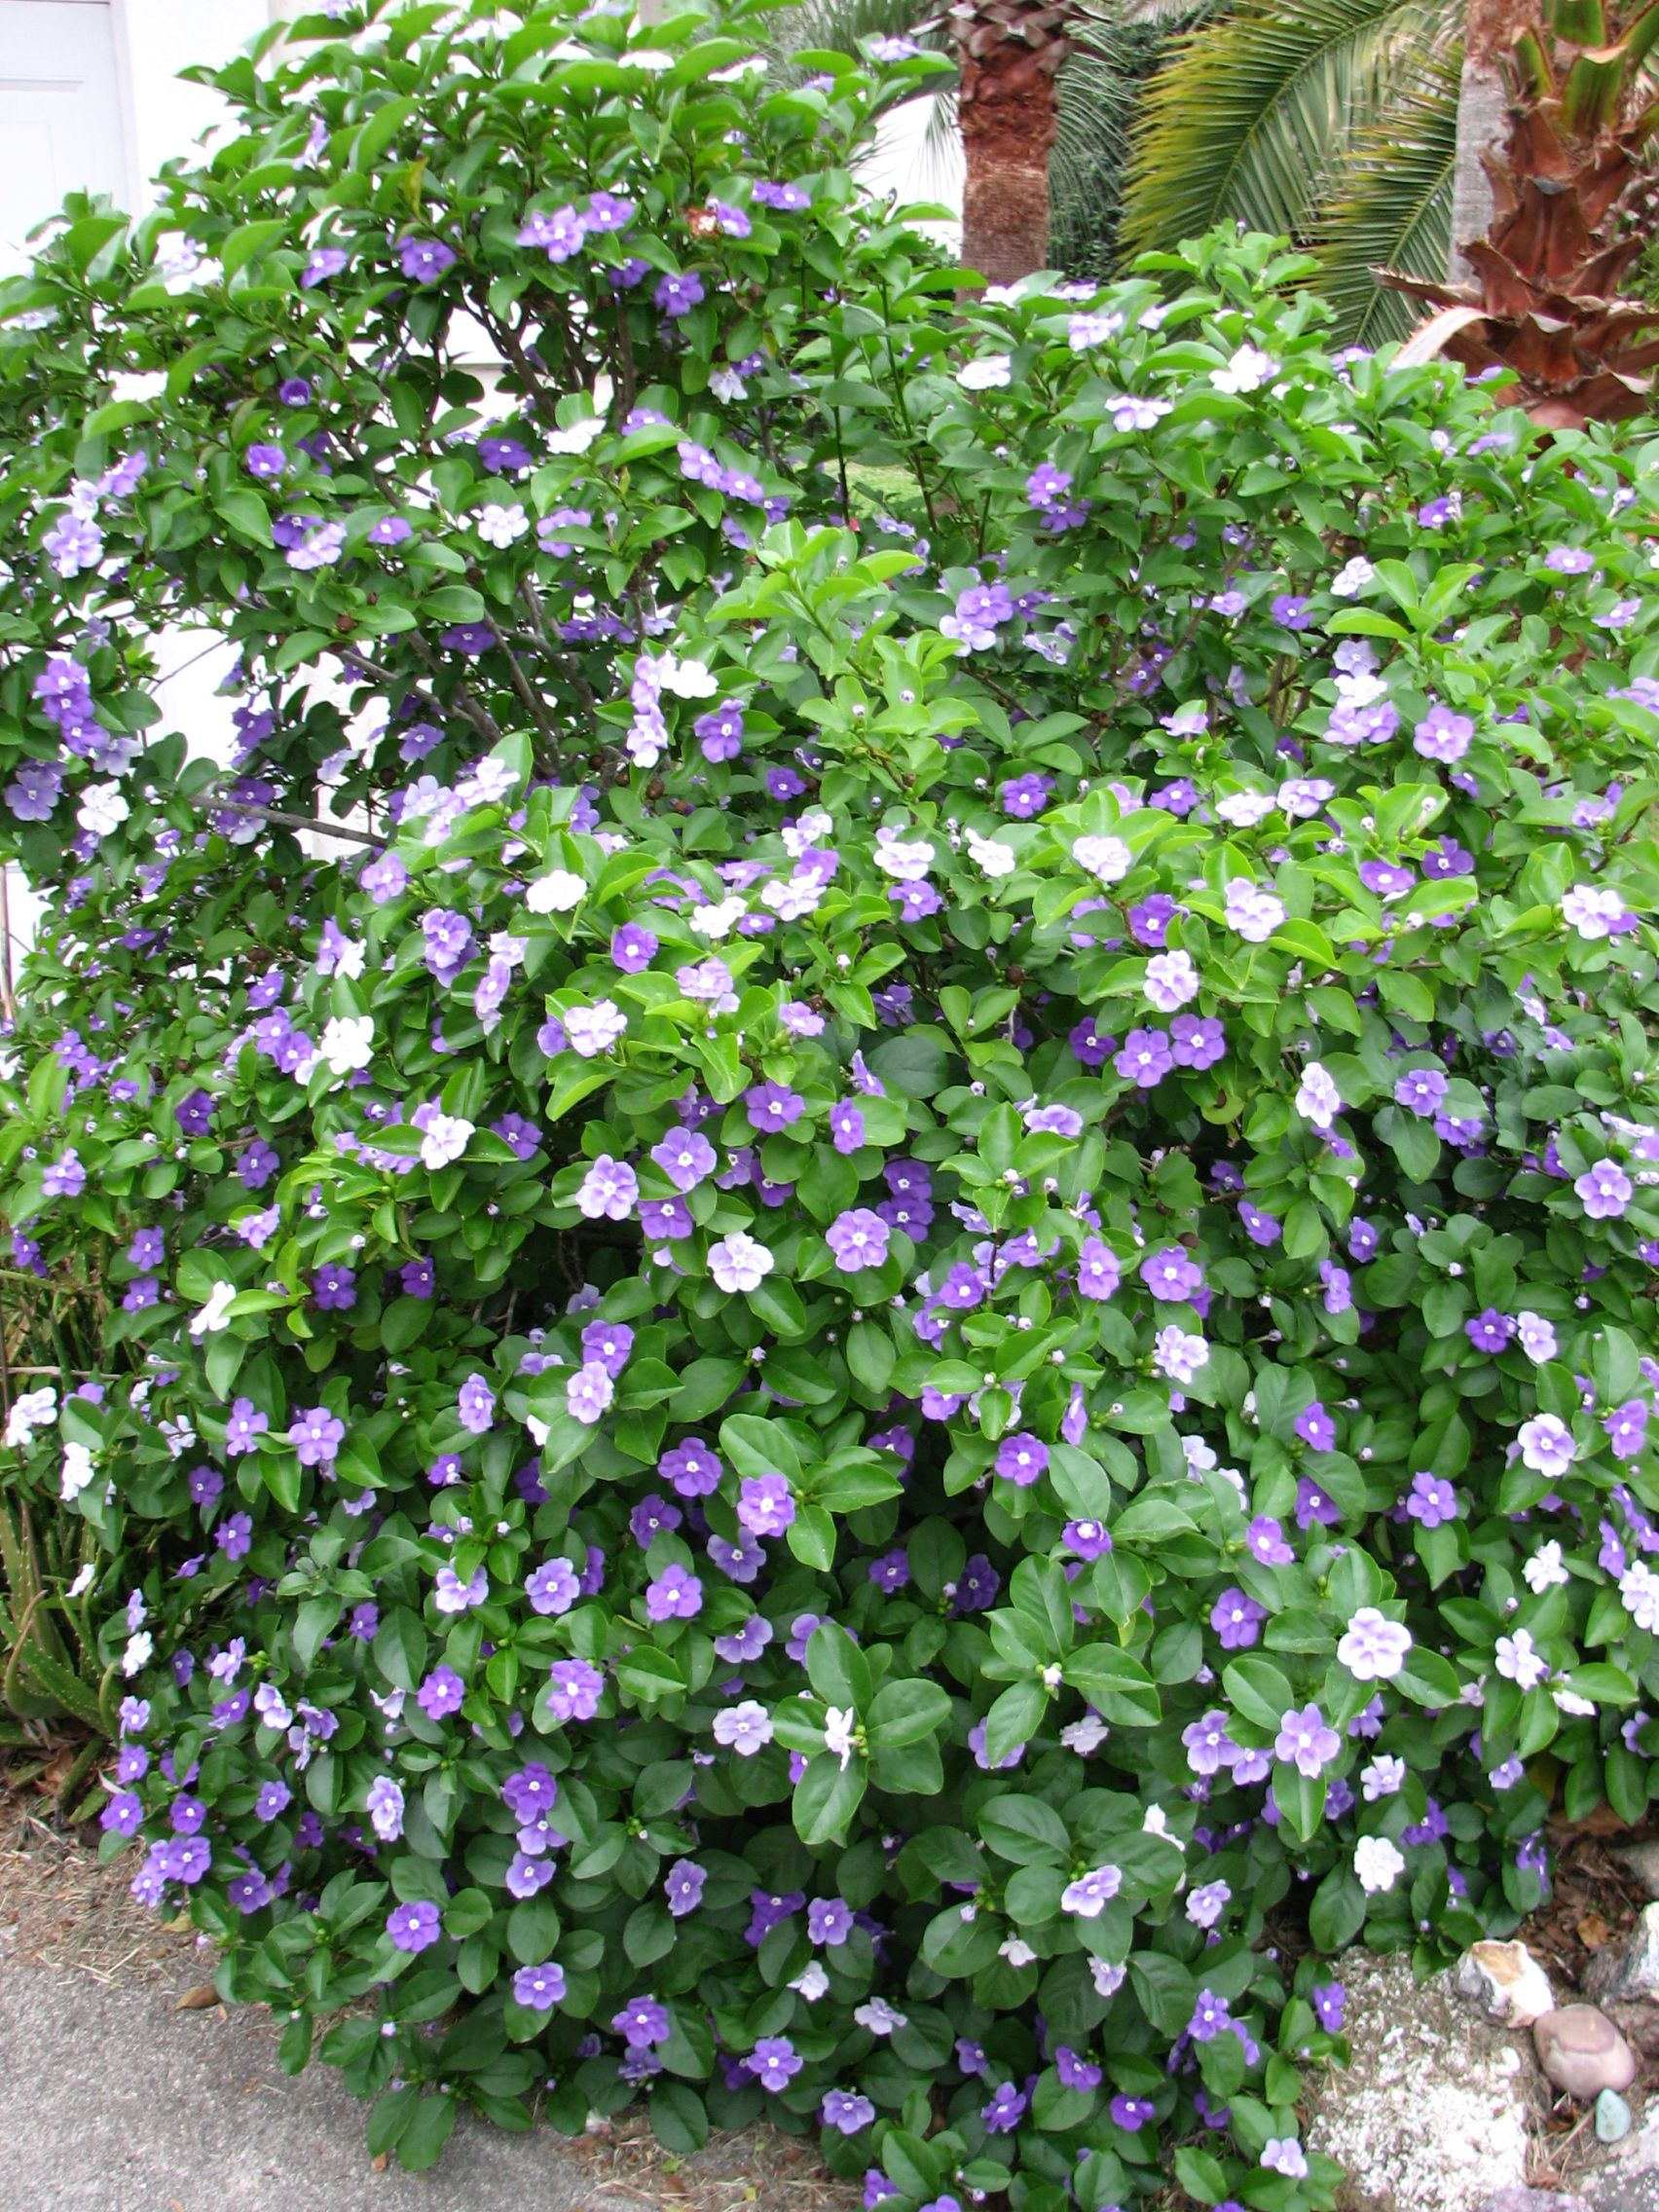 The Yesterday Today And Tomorrow Plant Brunfelsia Is A Tropical Native To Brazil Its Lush Green Foliage Accented With Unique Blooms That Change